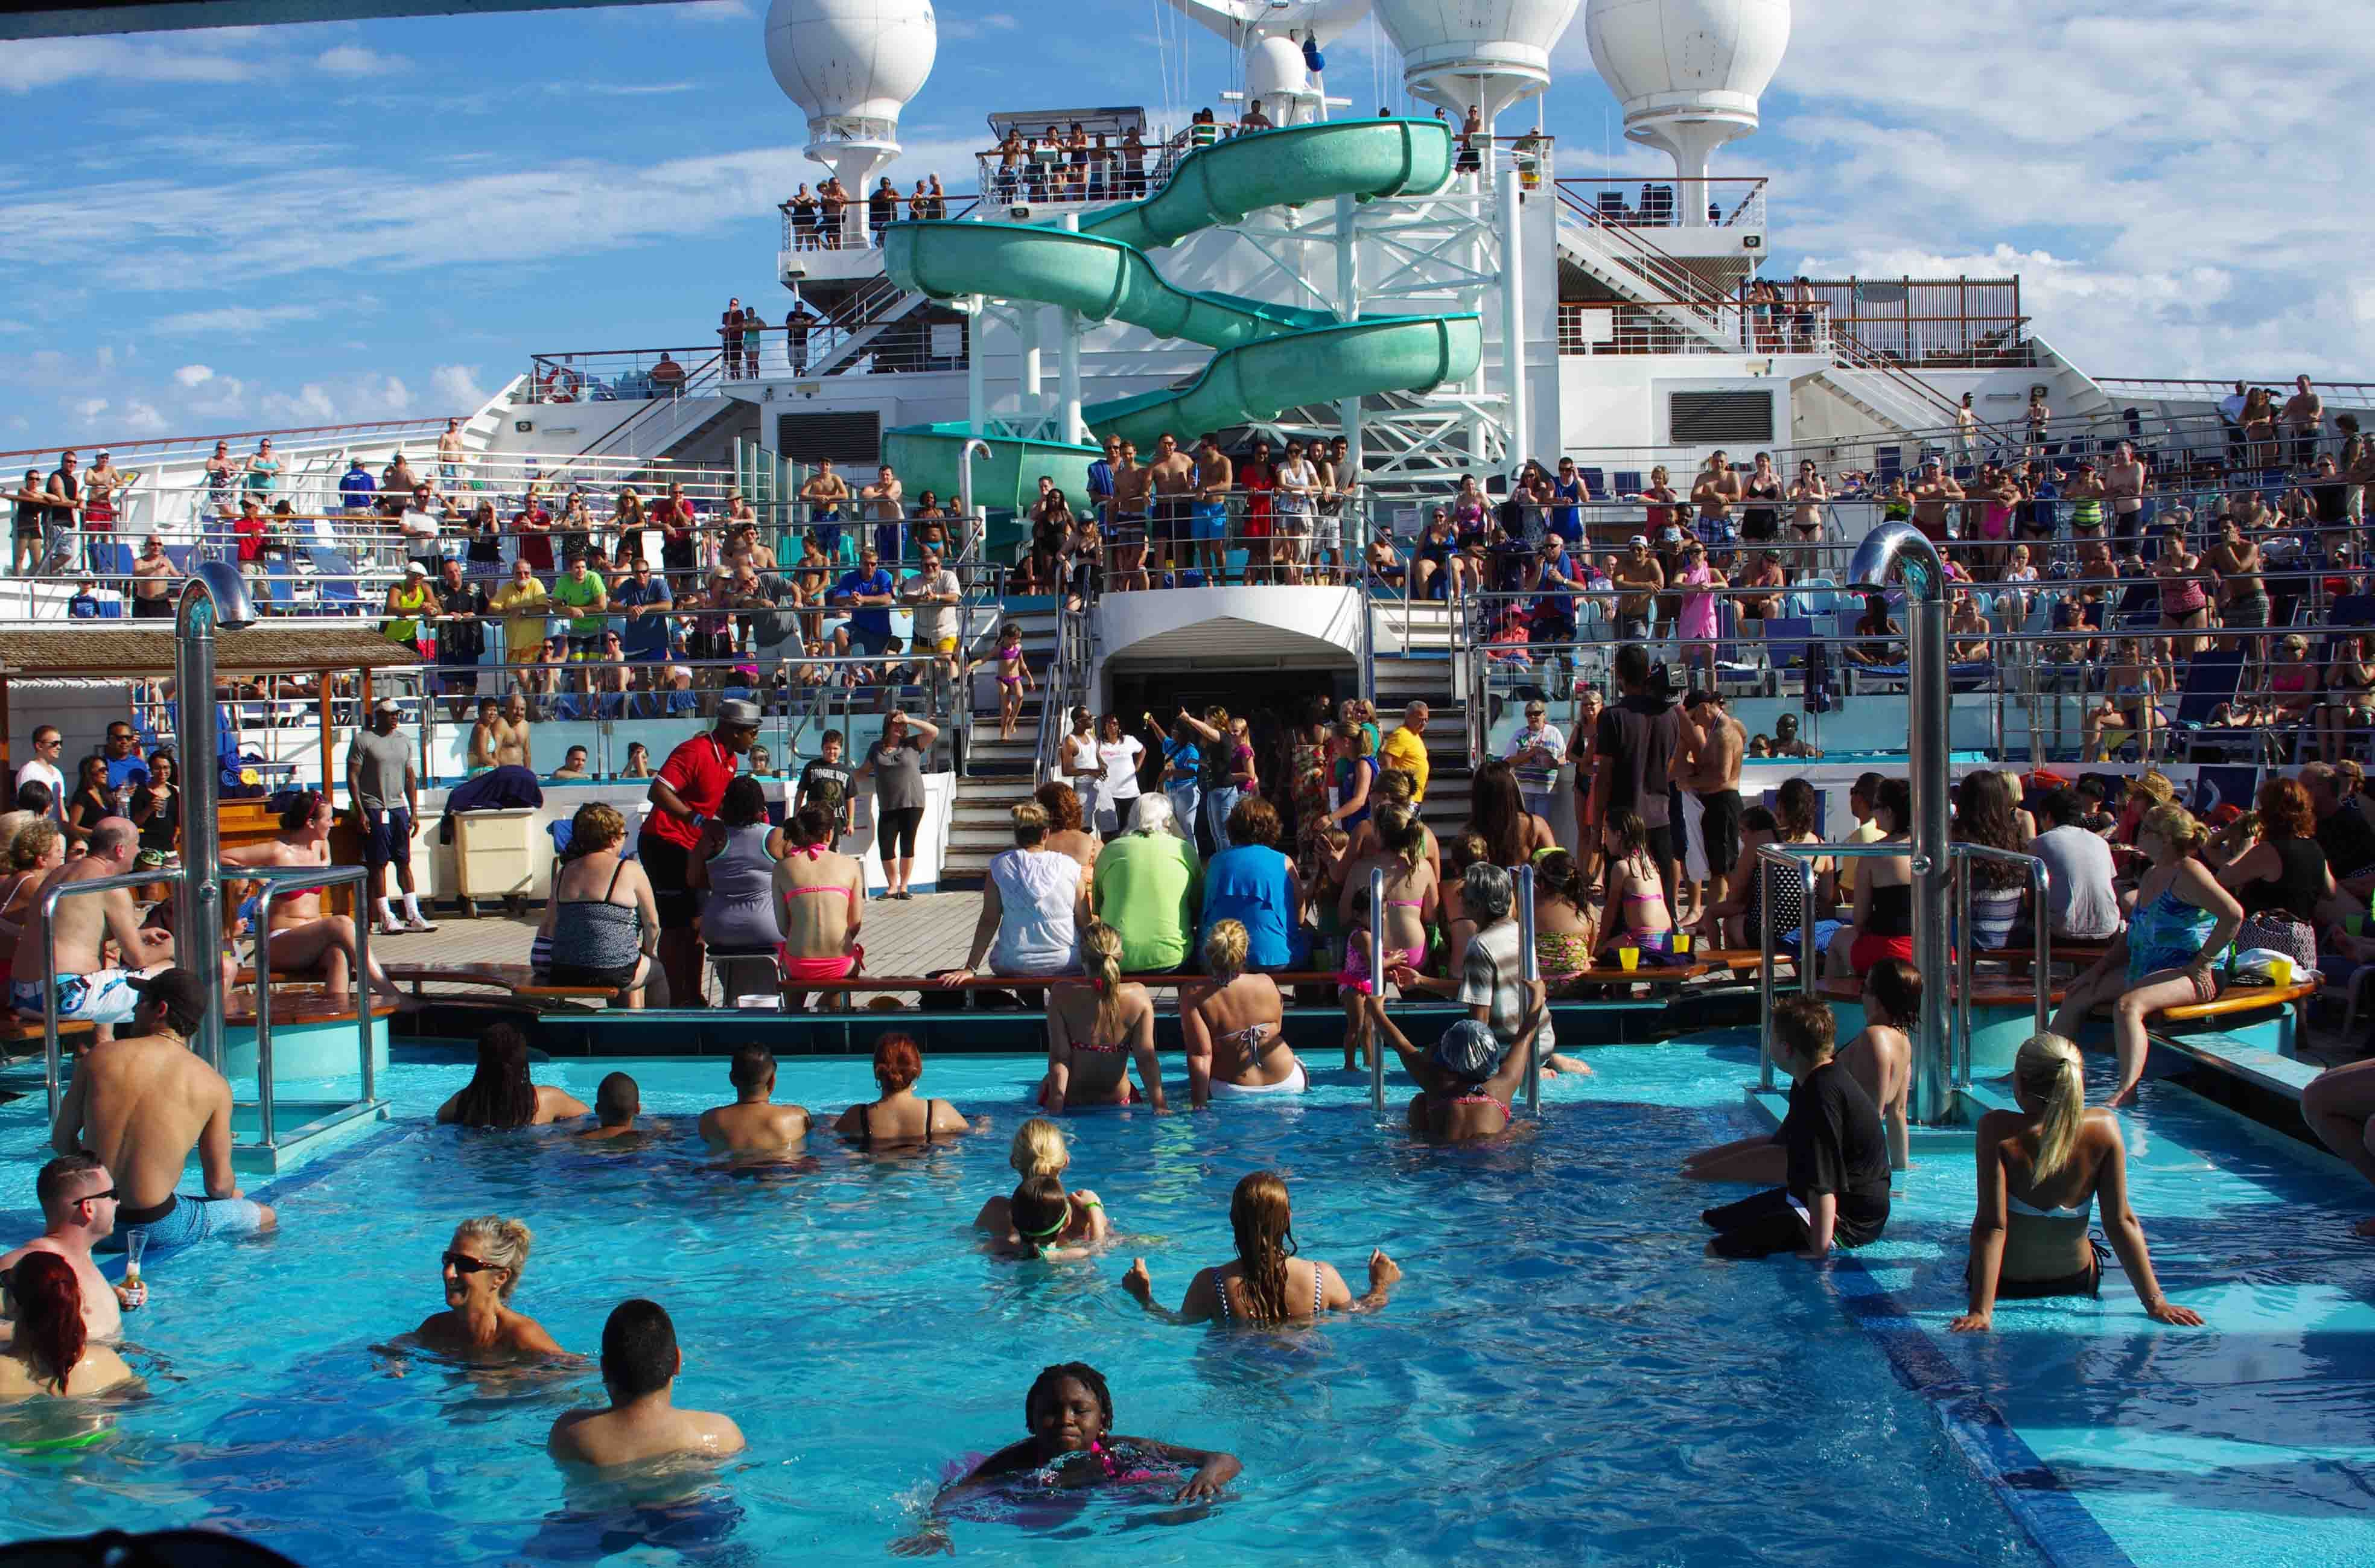 The Best Cruise Ever! - Carnival Glory Cruise Review